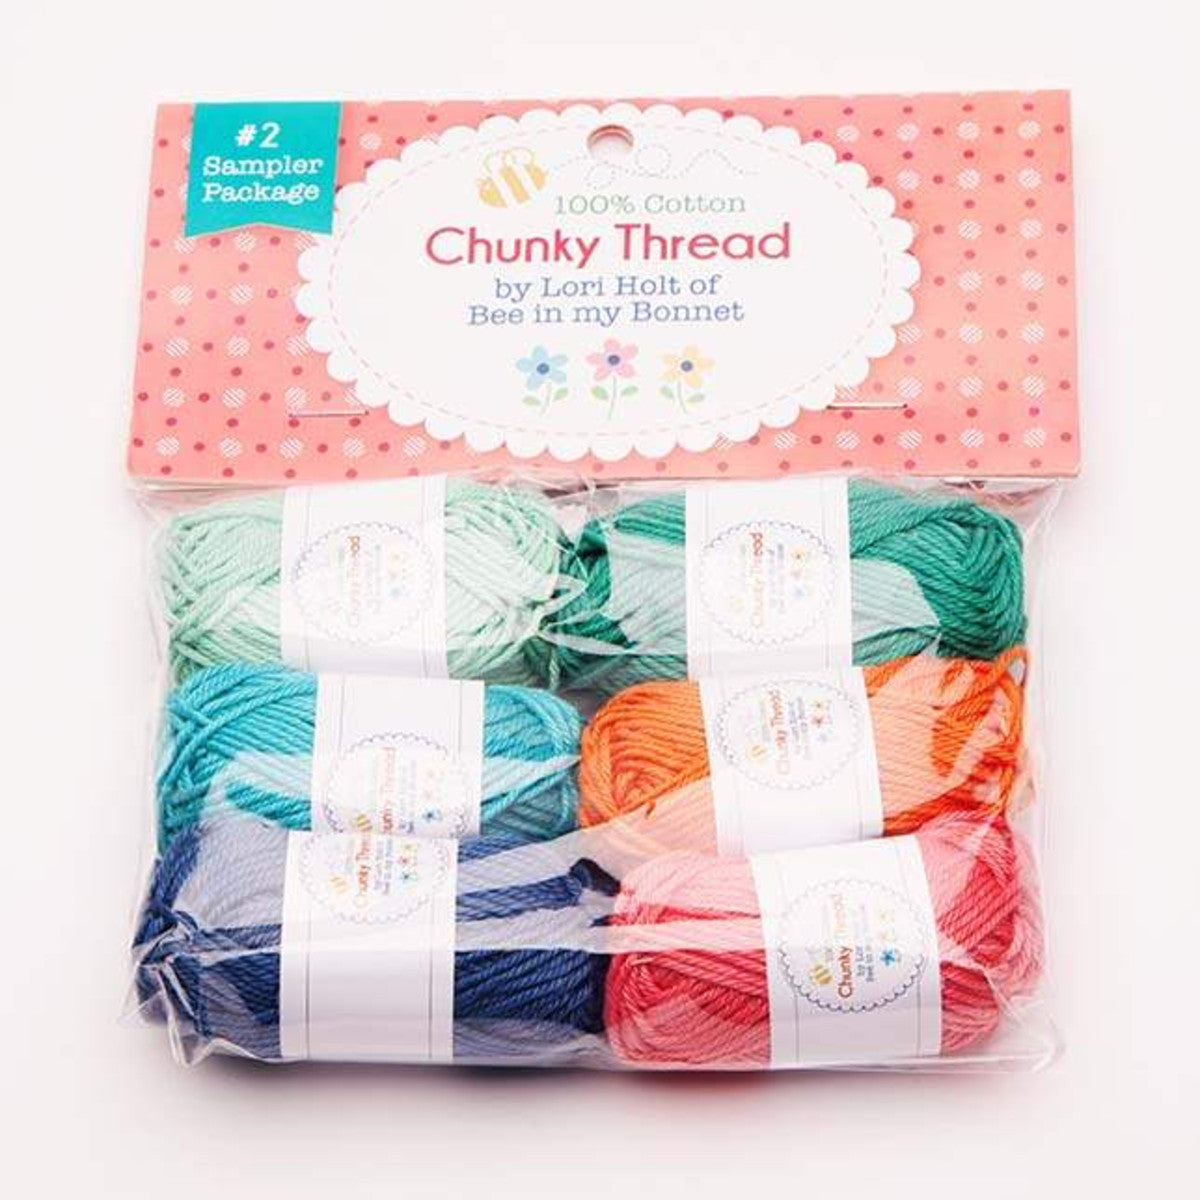 Crochet Chunky Thread, Lori Holt Sampler Pack #2